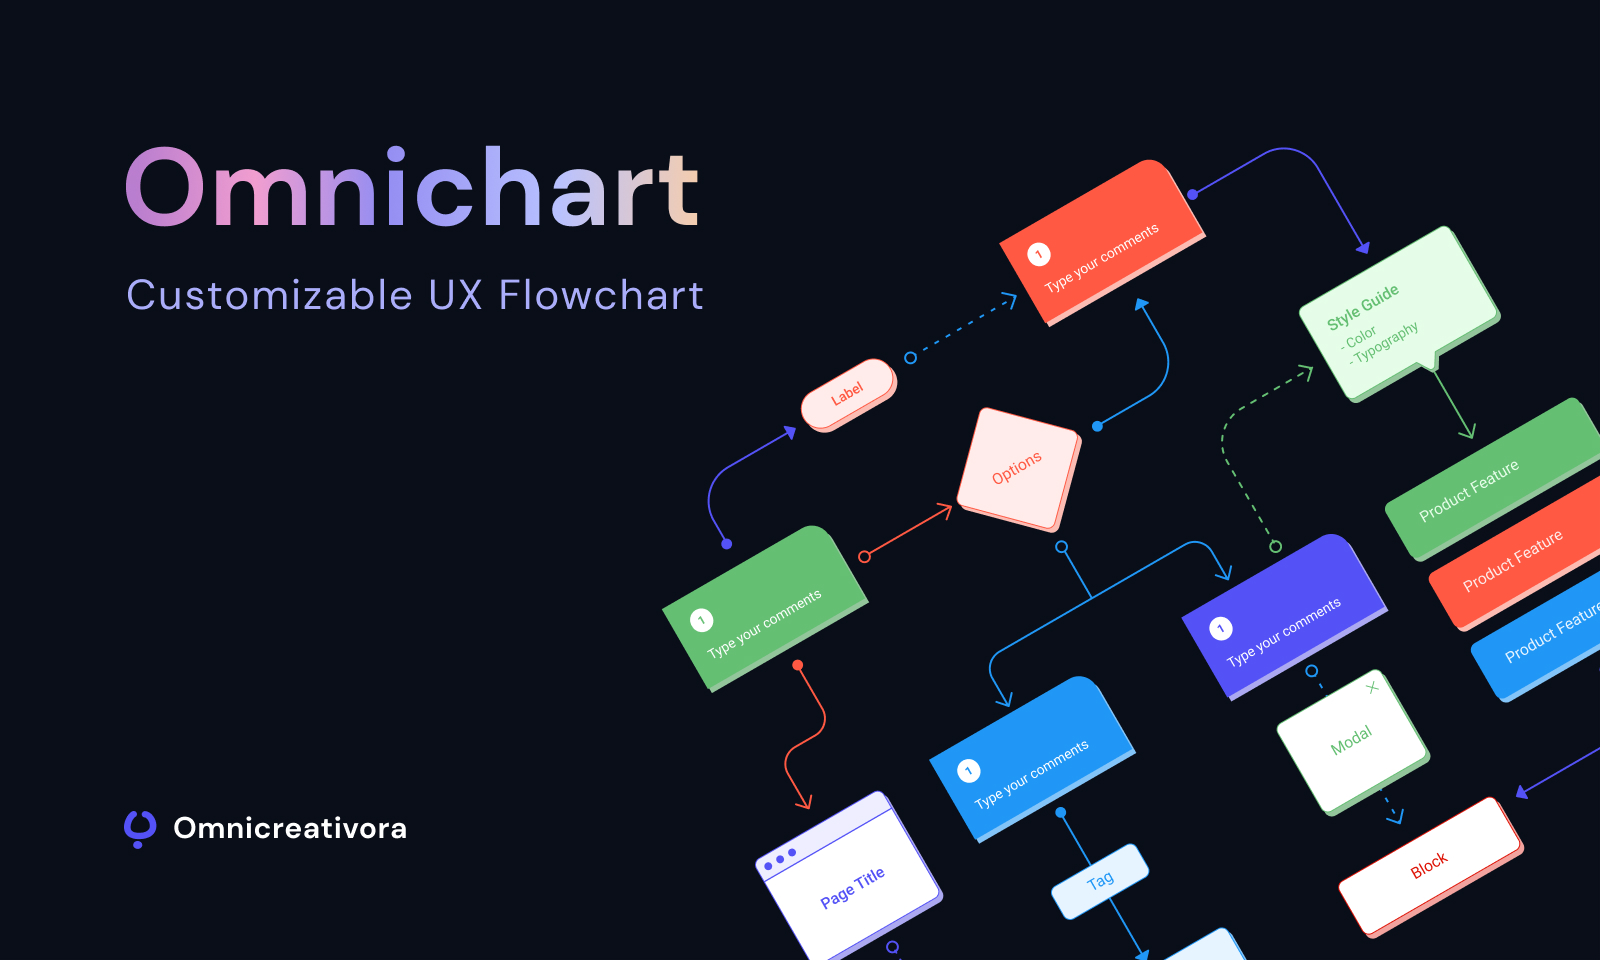 Omnichart - Free UX Flow Chart - We make a customizabe UX Flow Chart. Every part separated as component, you can edit, change,  or use for your purposes. Feel free to use!